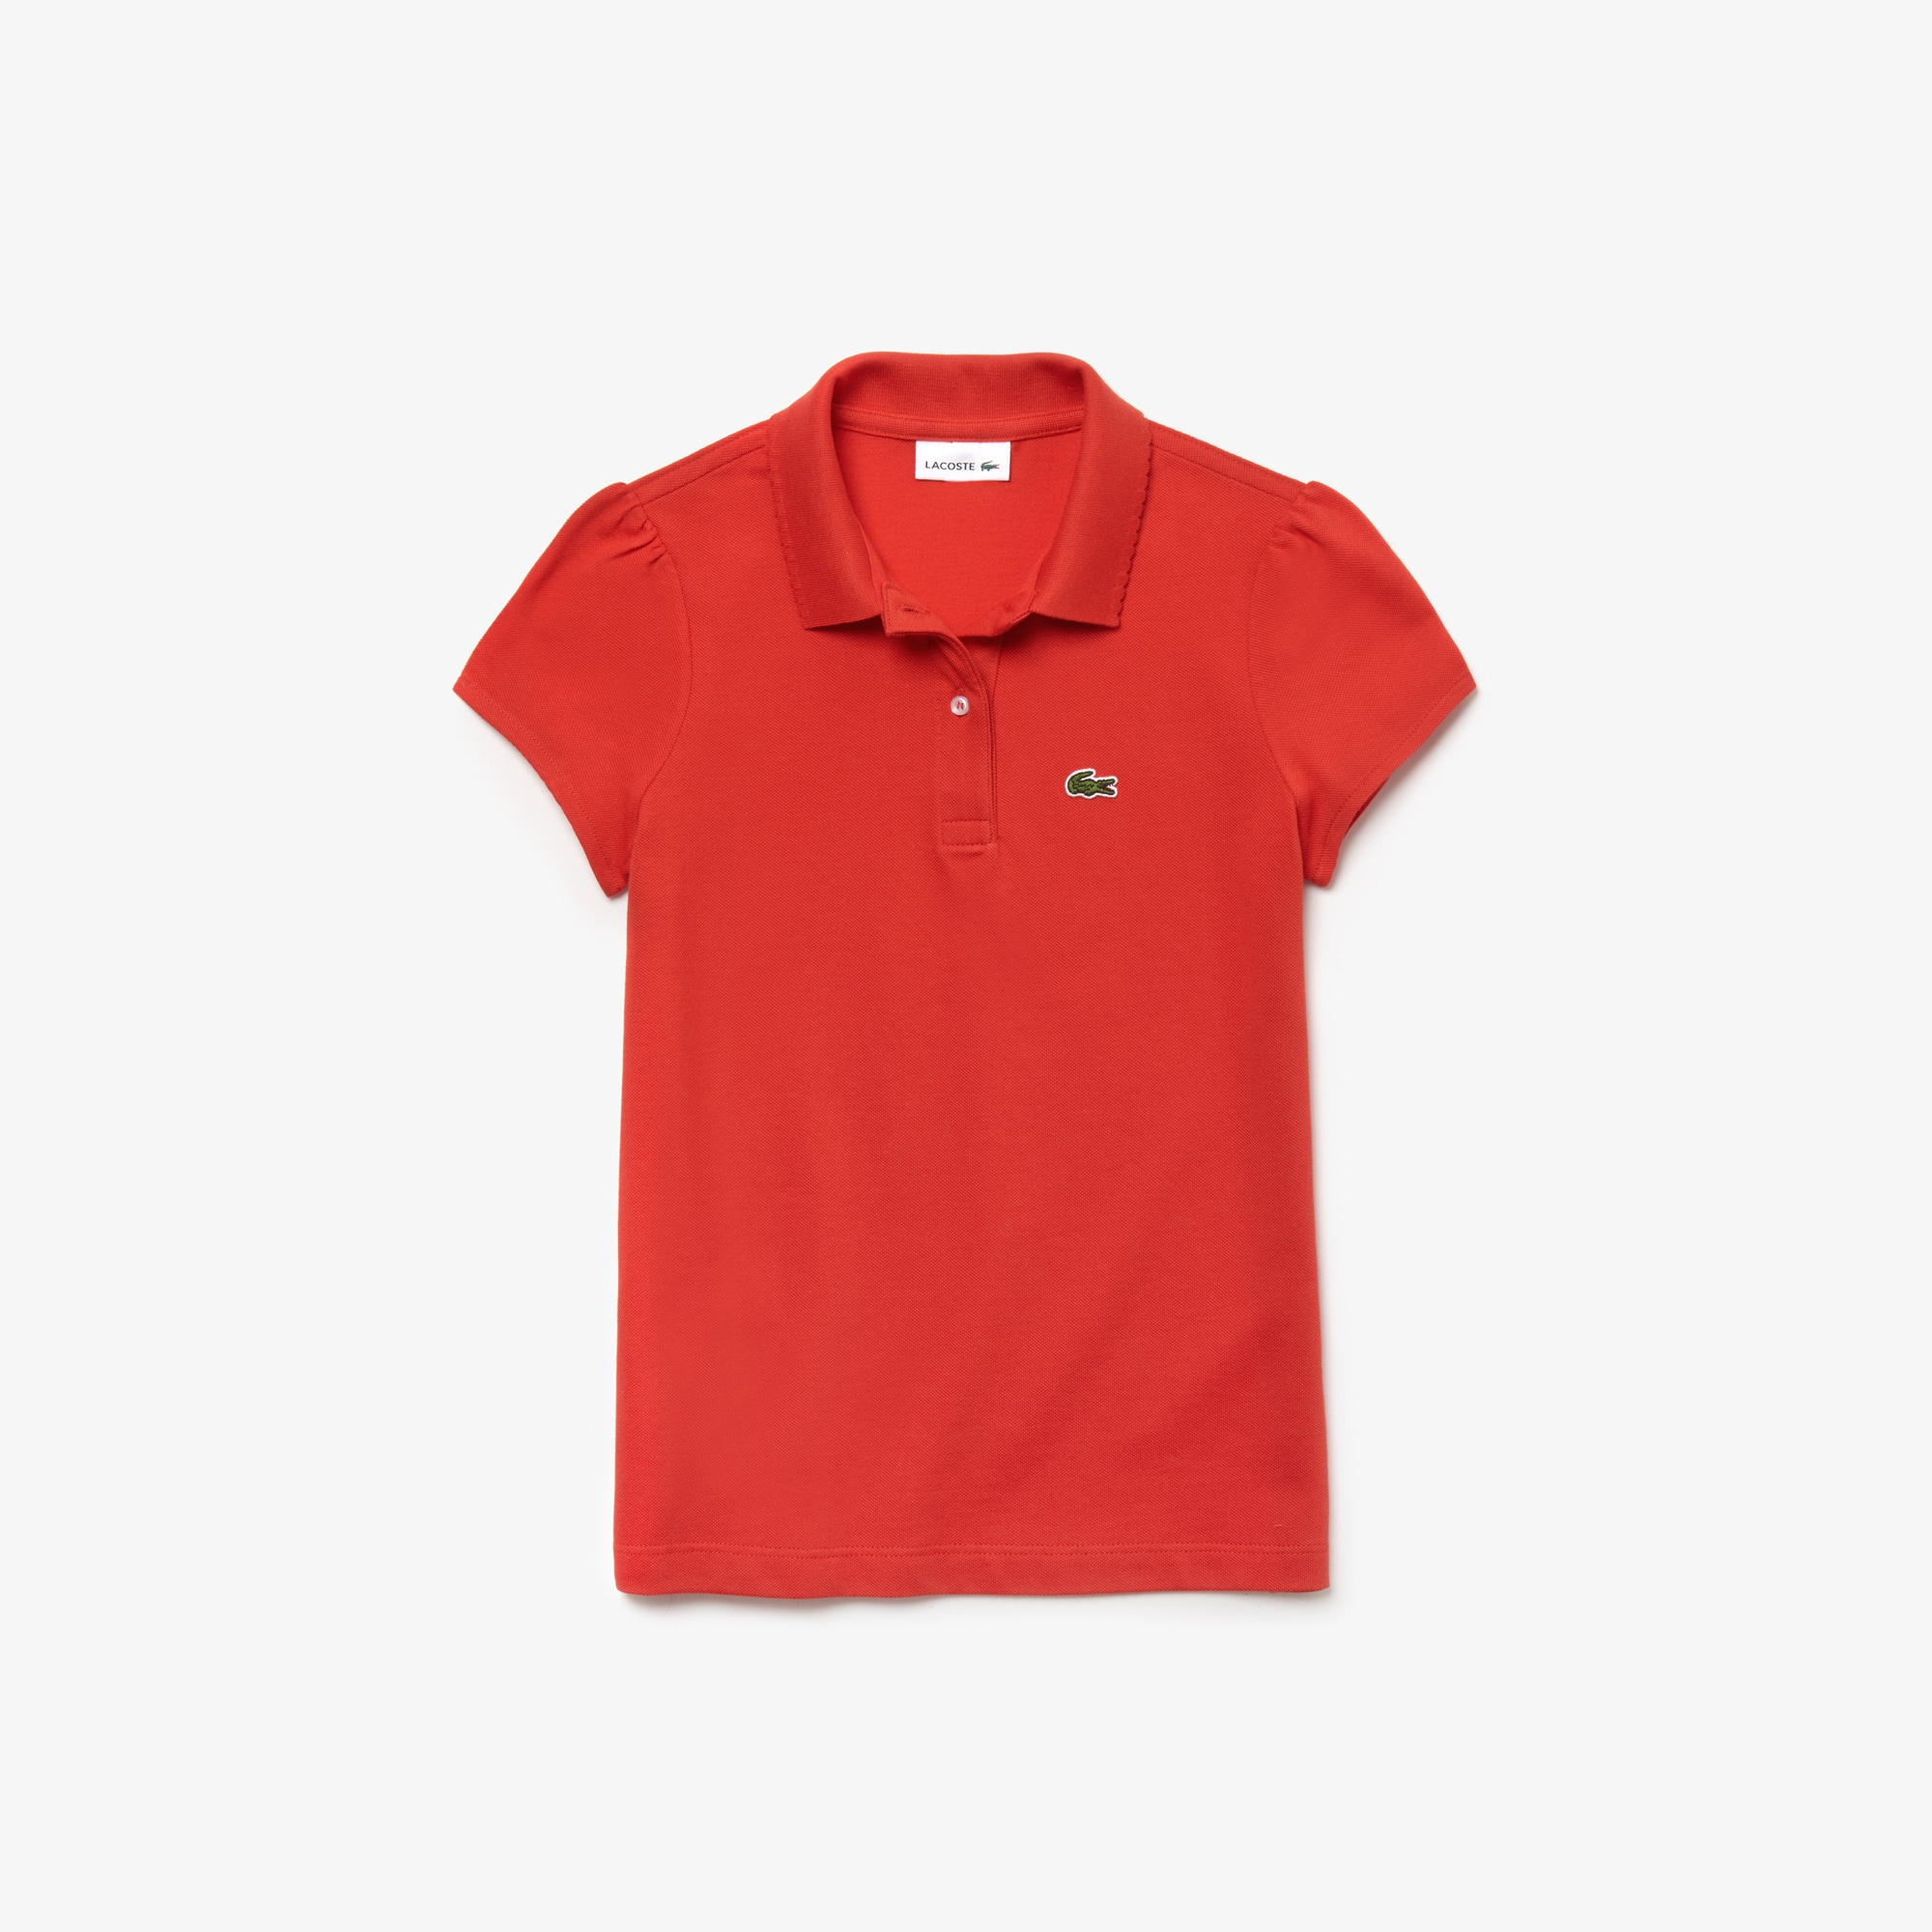 9778cae35 Girls  Lacoste Scalloped Collar Mini Piqué Polo Shirt